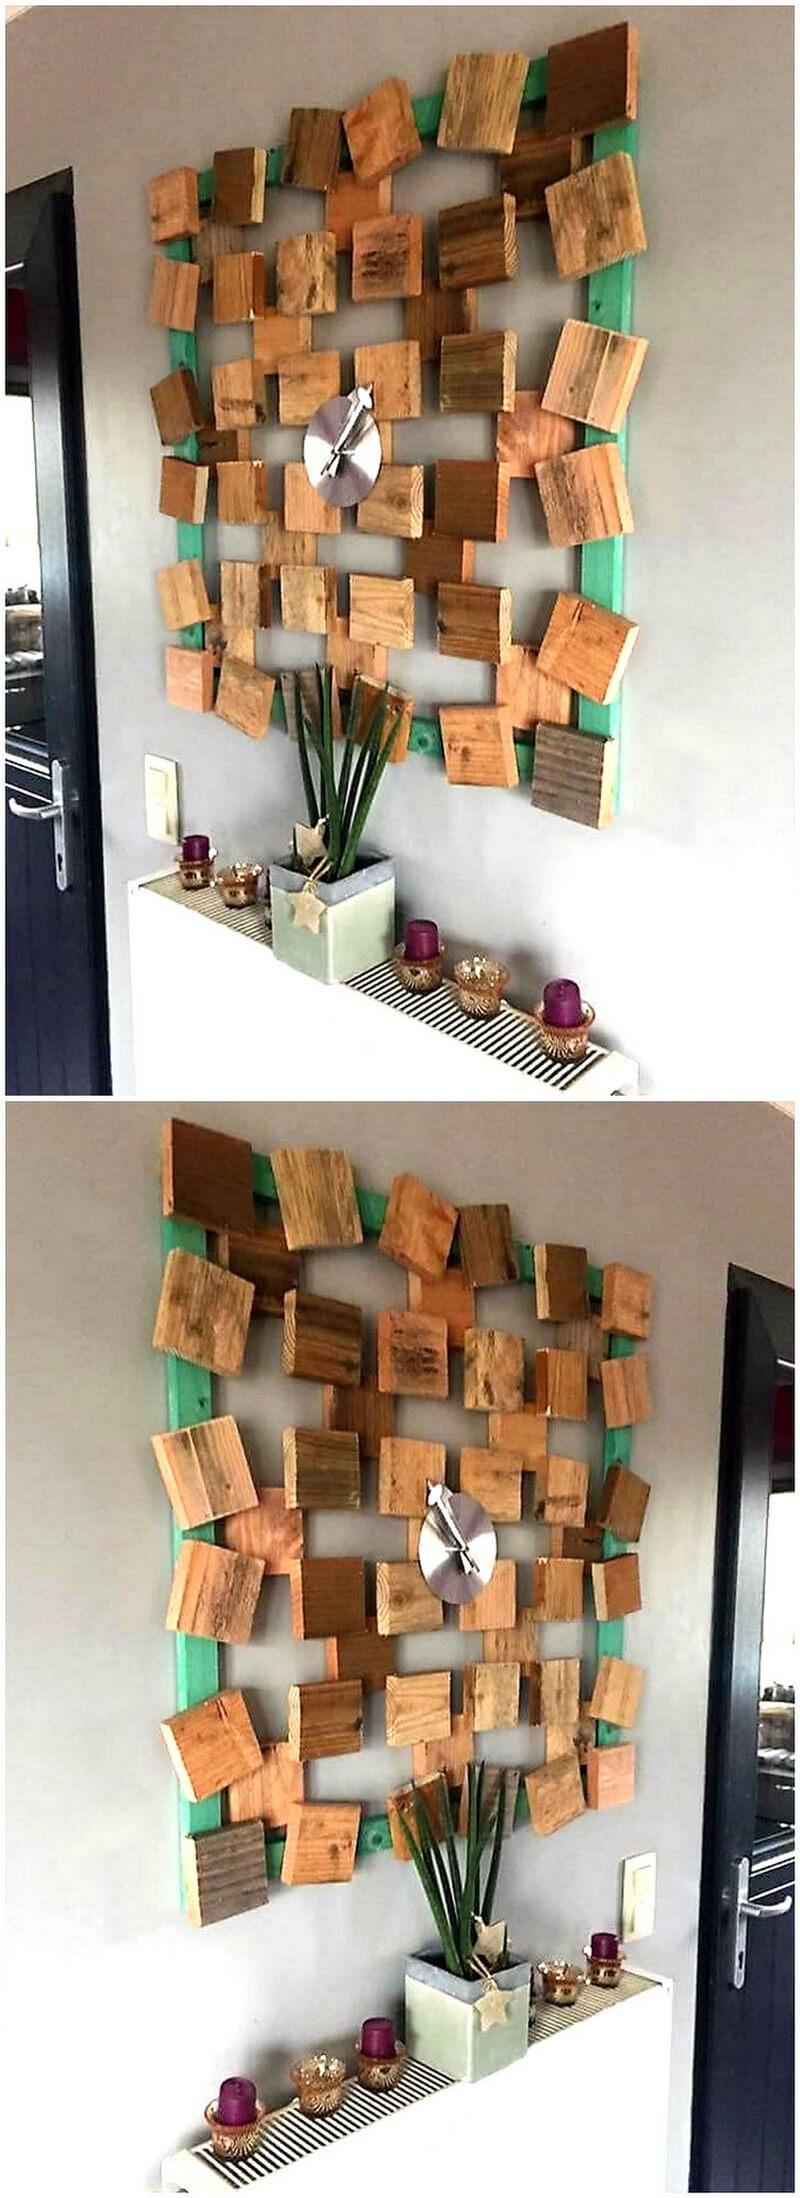 Creative realizations with recycled wooden pallets for Recycled wall art ideas